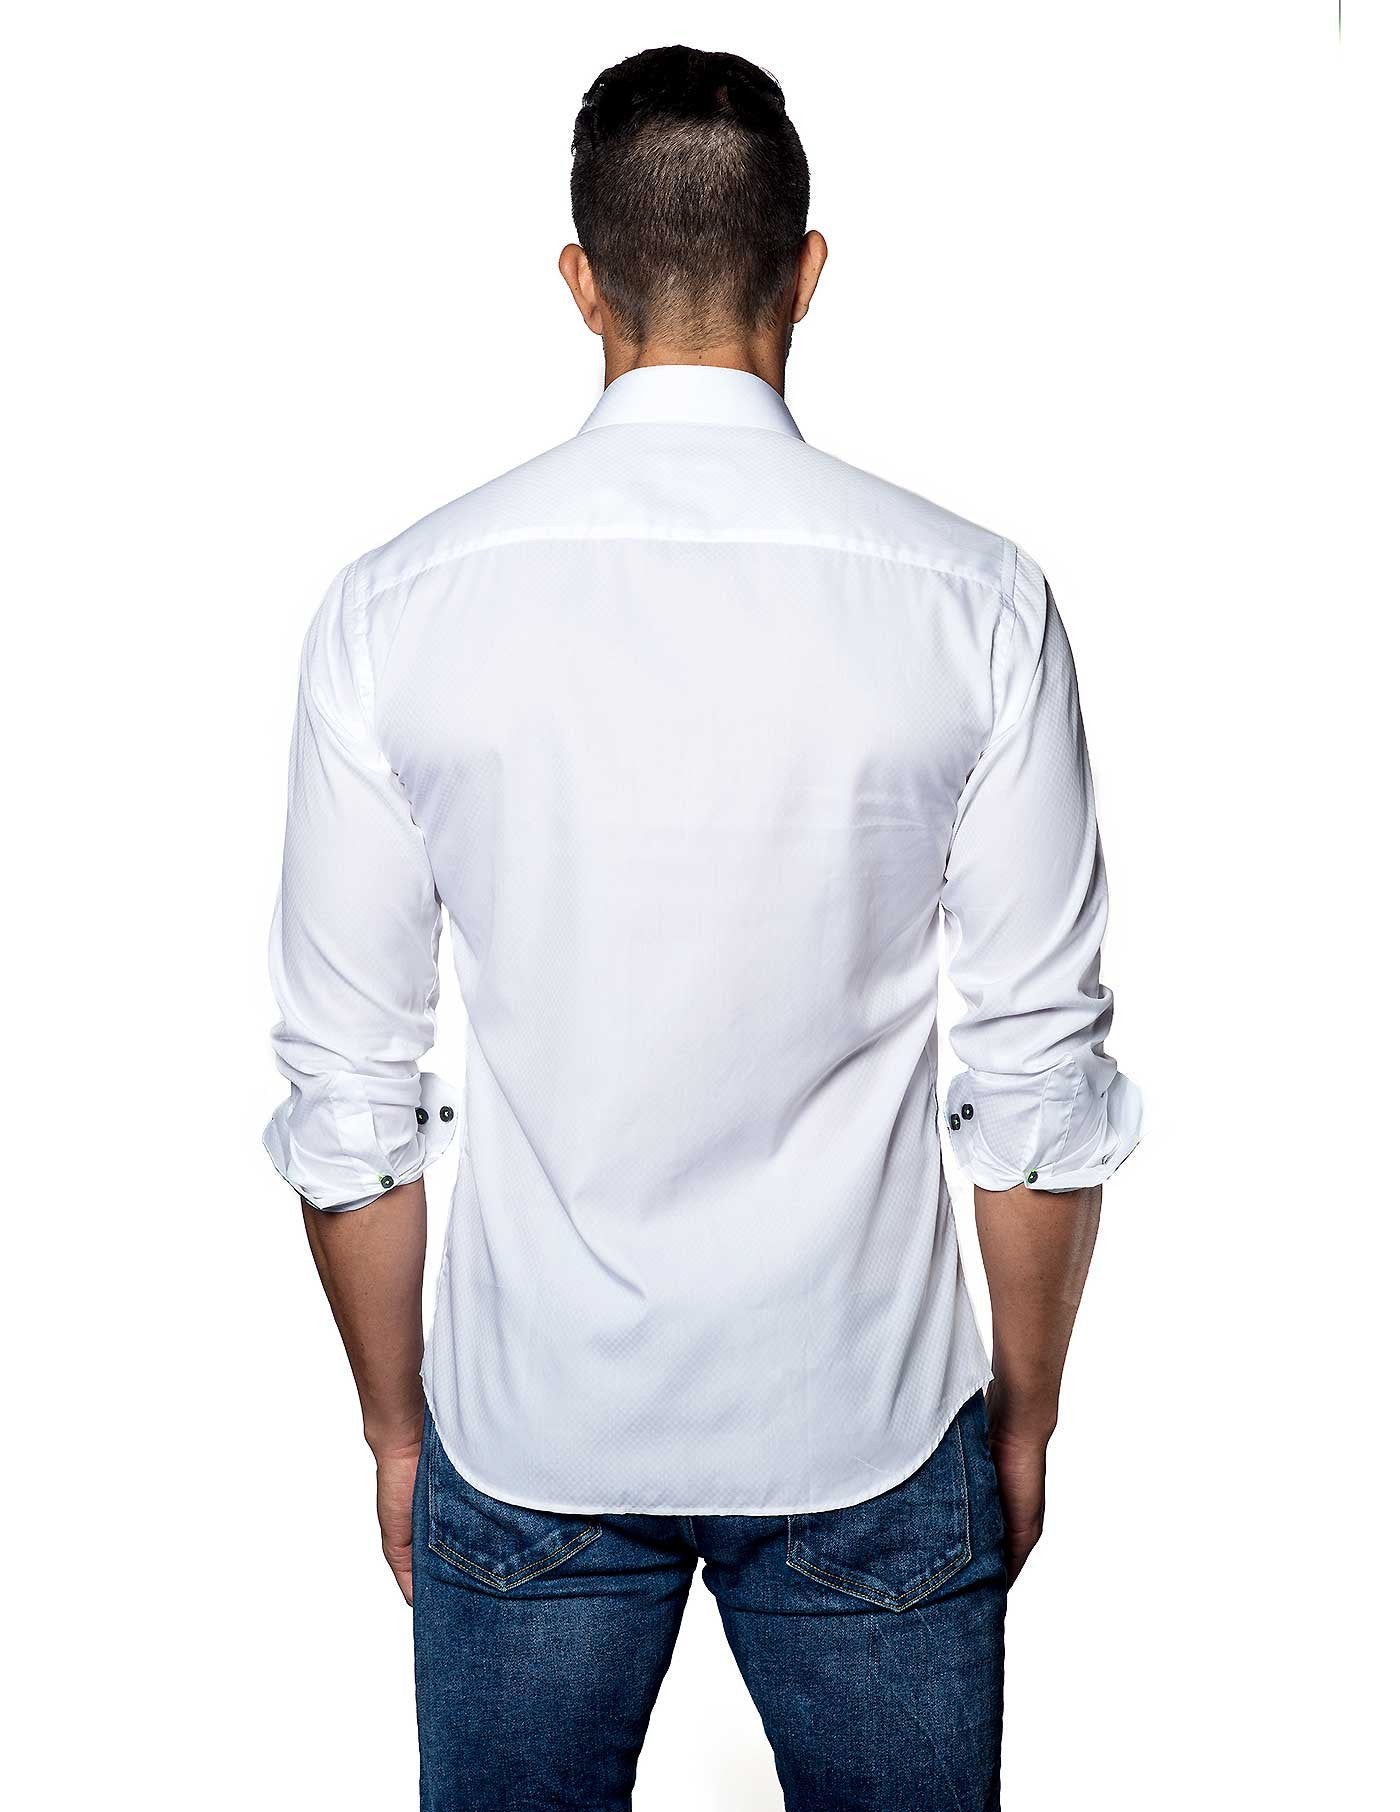 White Solid Damier Jacquard Shirt for Men - back T-2050 - Jared Lang